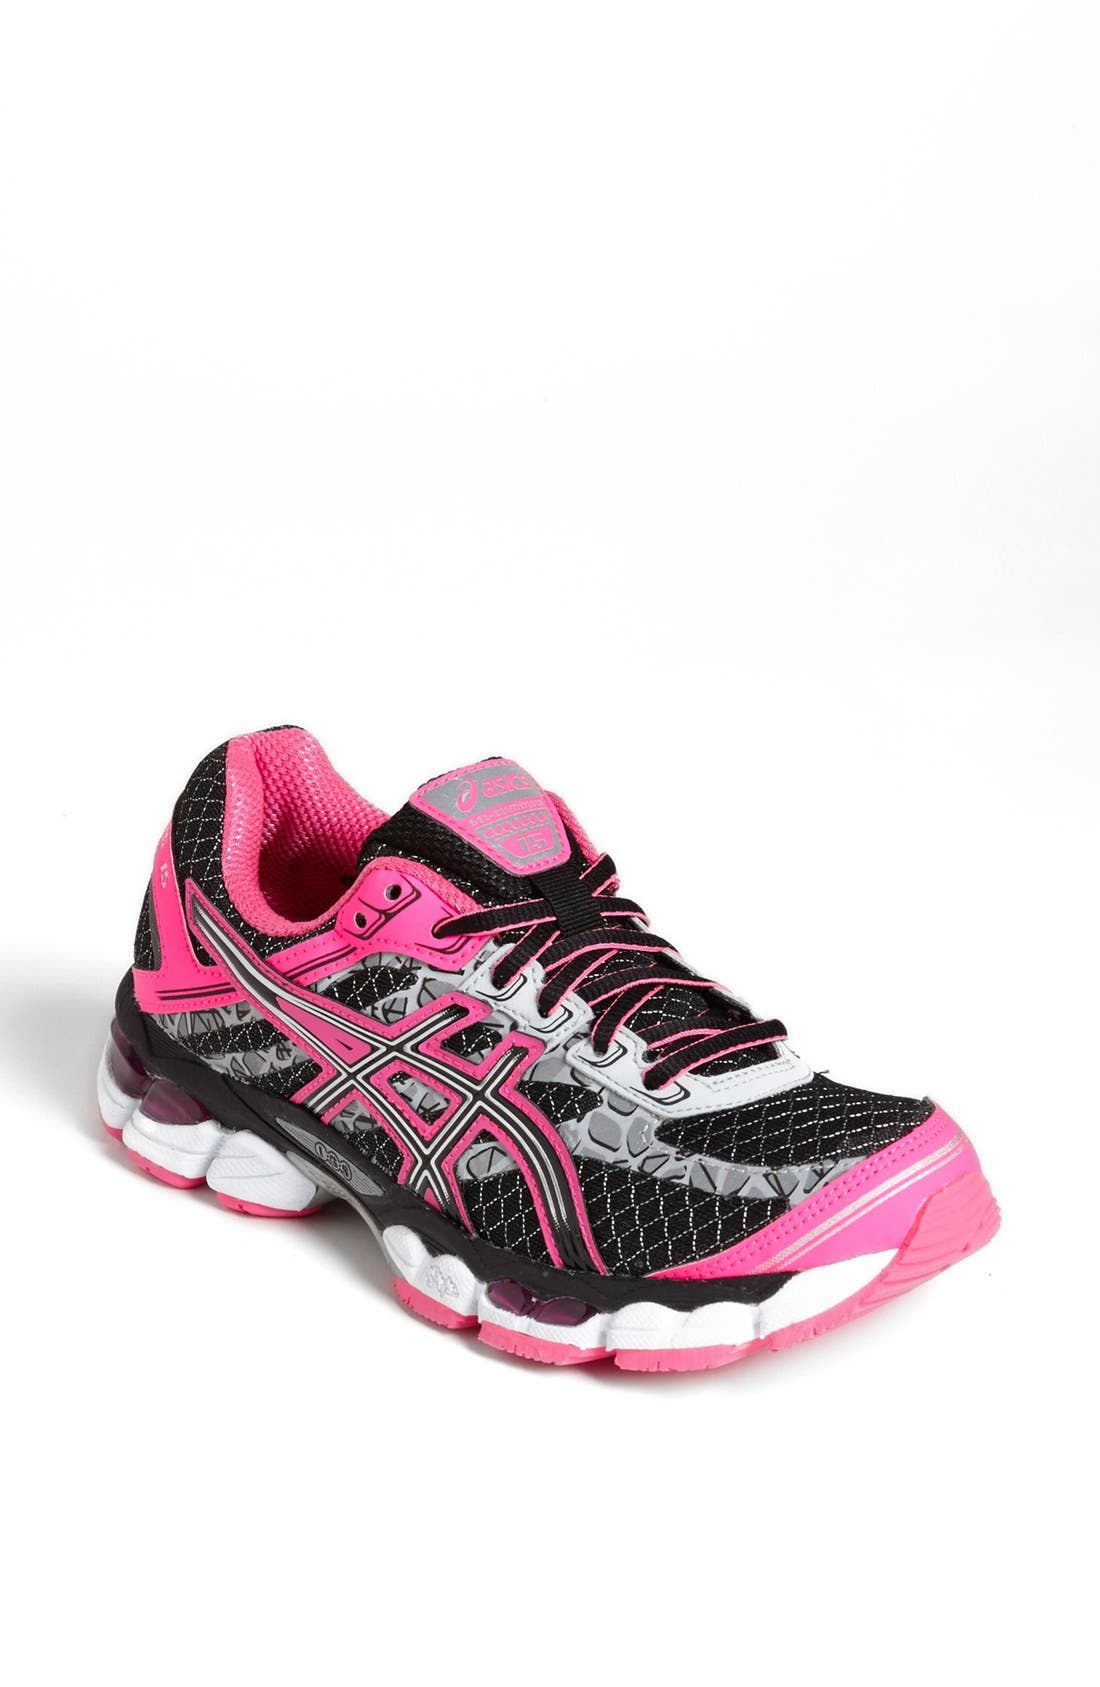 Alternate Image 1 Selected - ASICS® 'Gel-Cumulus 15' Running Shoe (Women)